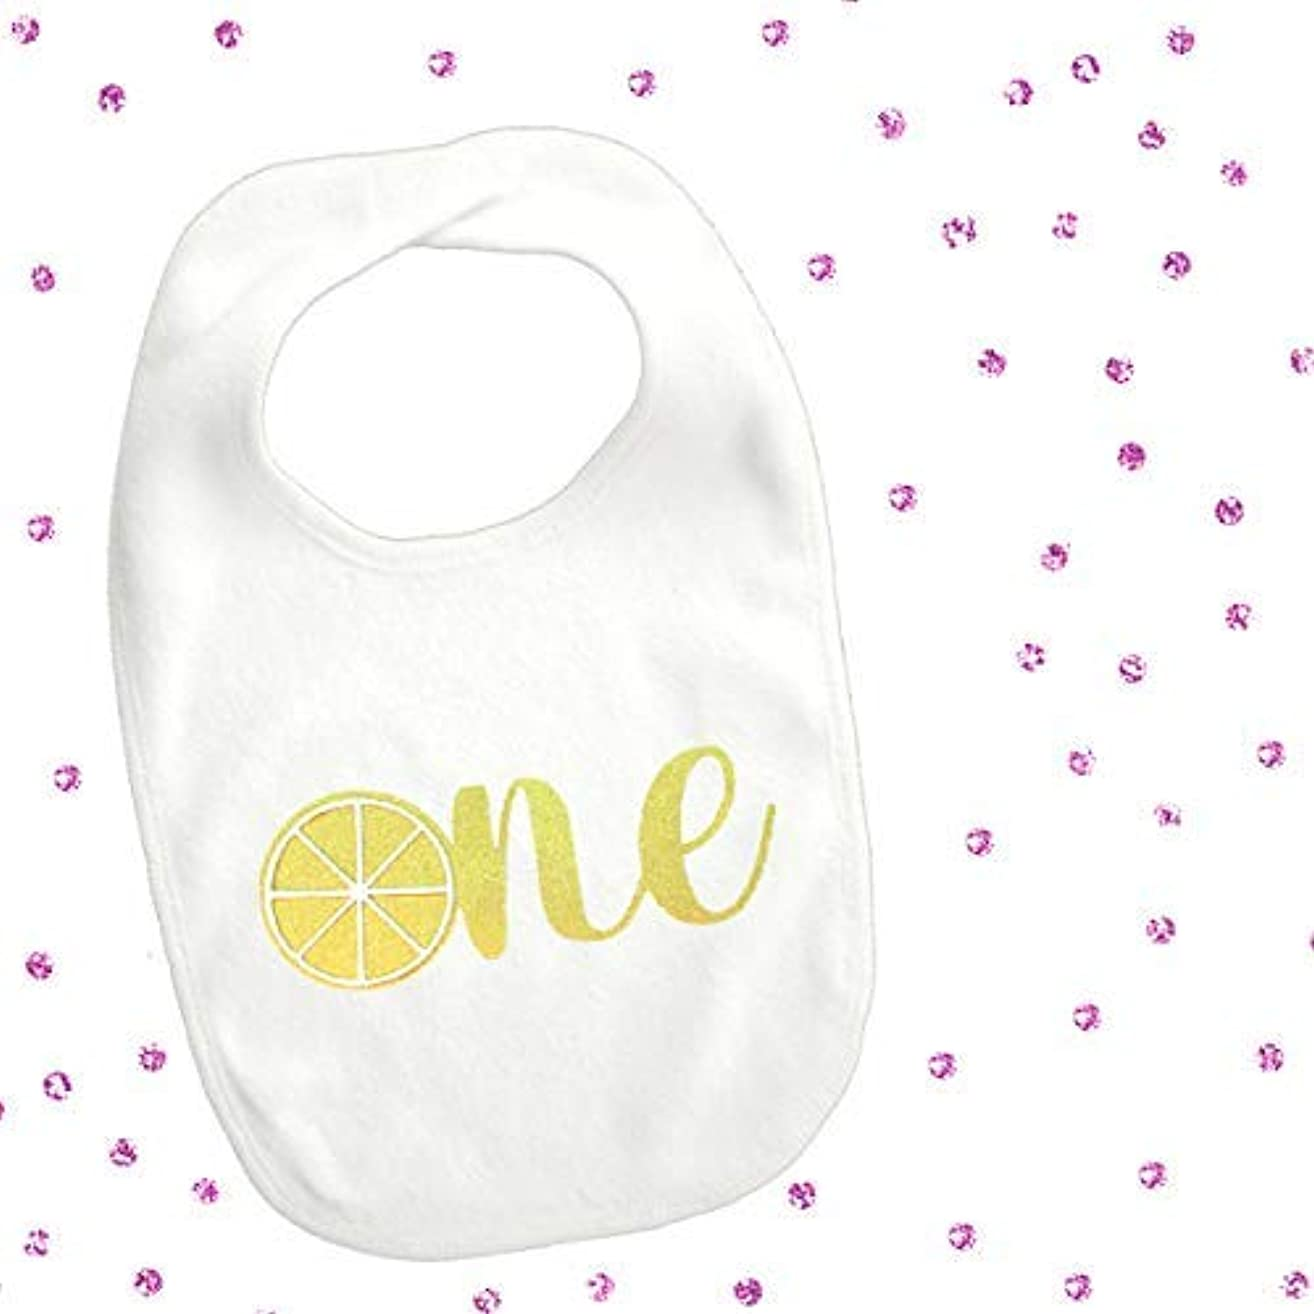 1 piece lemon citrus one bib toddler boy girl for first birthday summer fruit cake smash photo prop lemonade tutti fruity